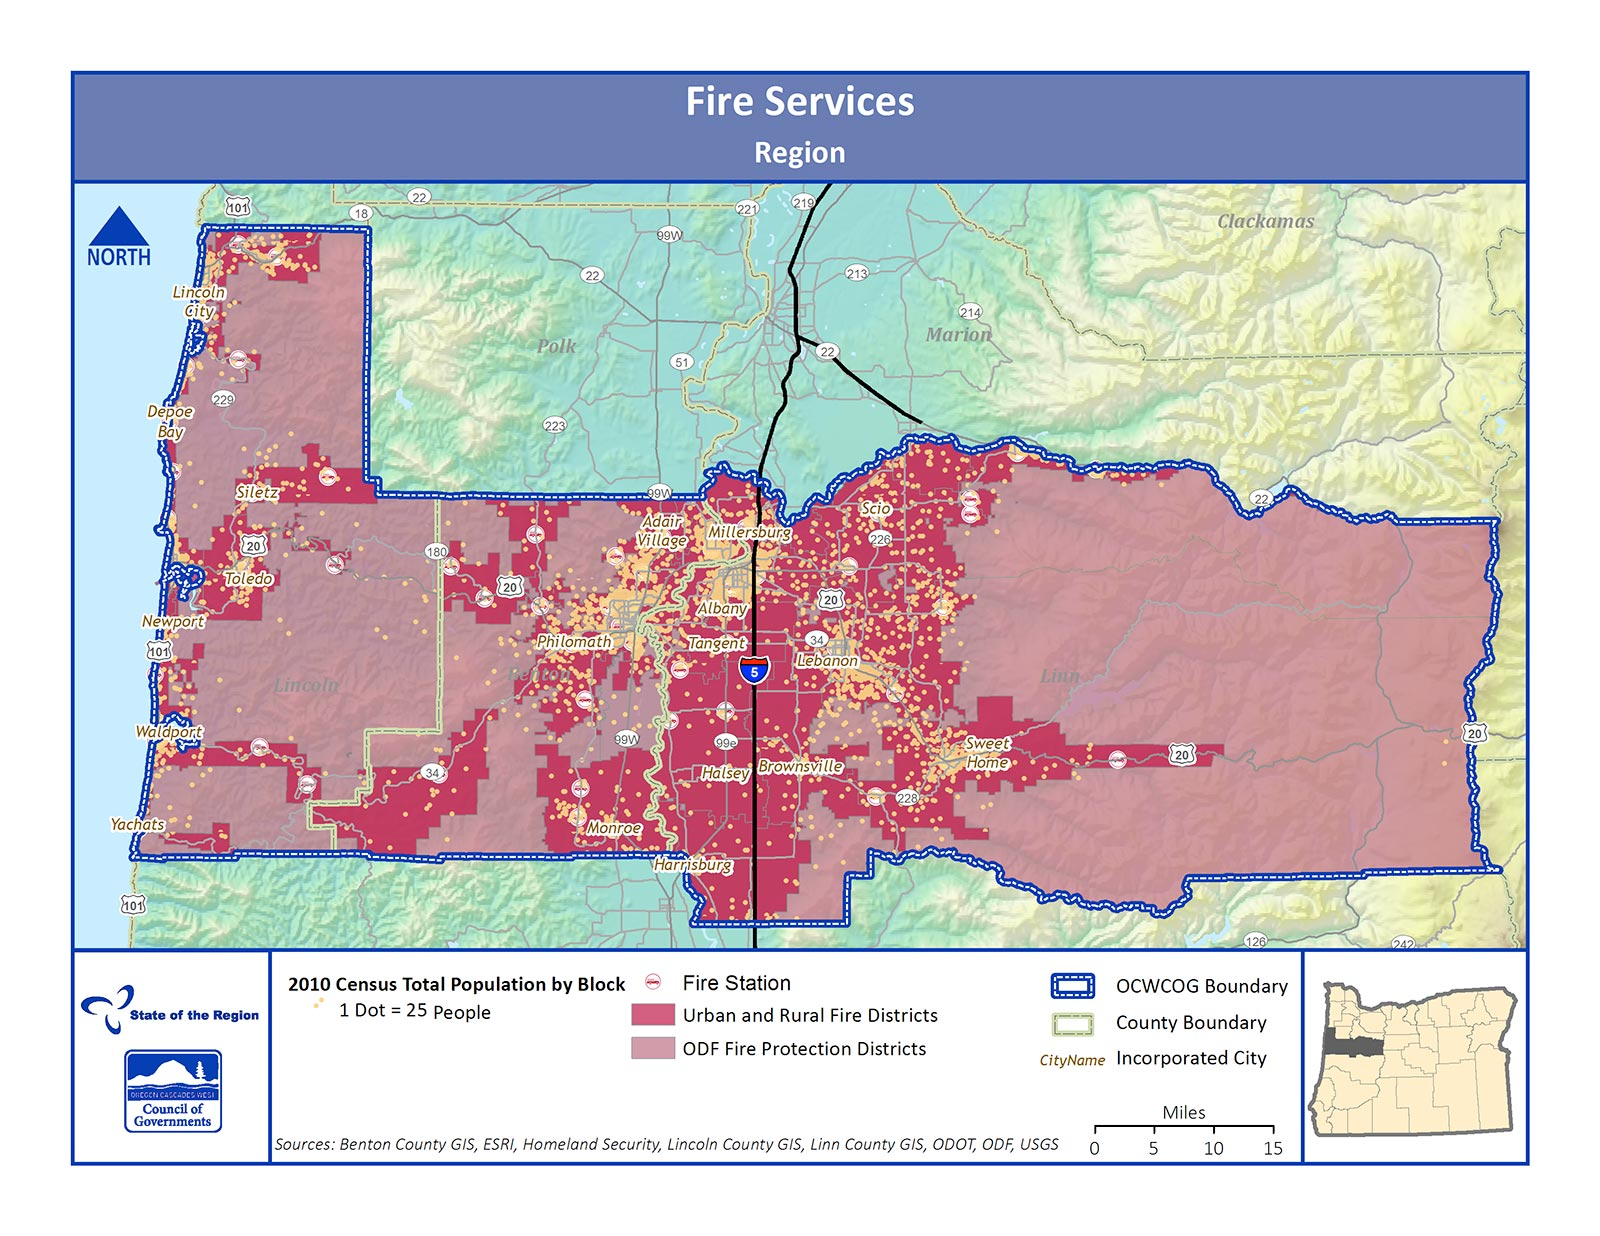 Map of Fire Services in the Region